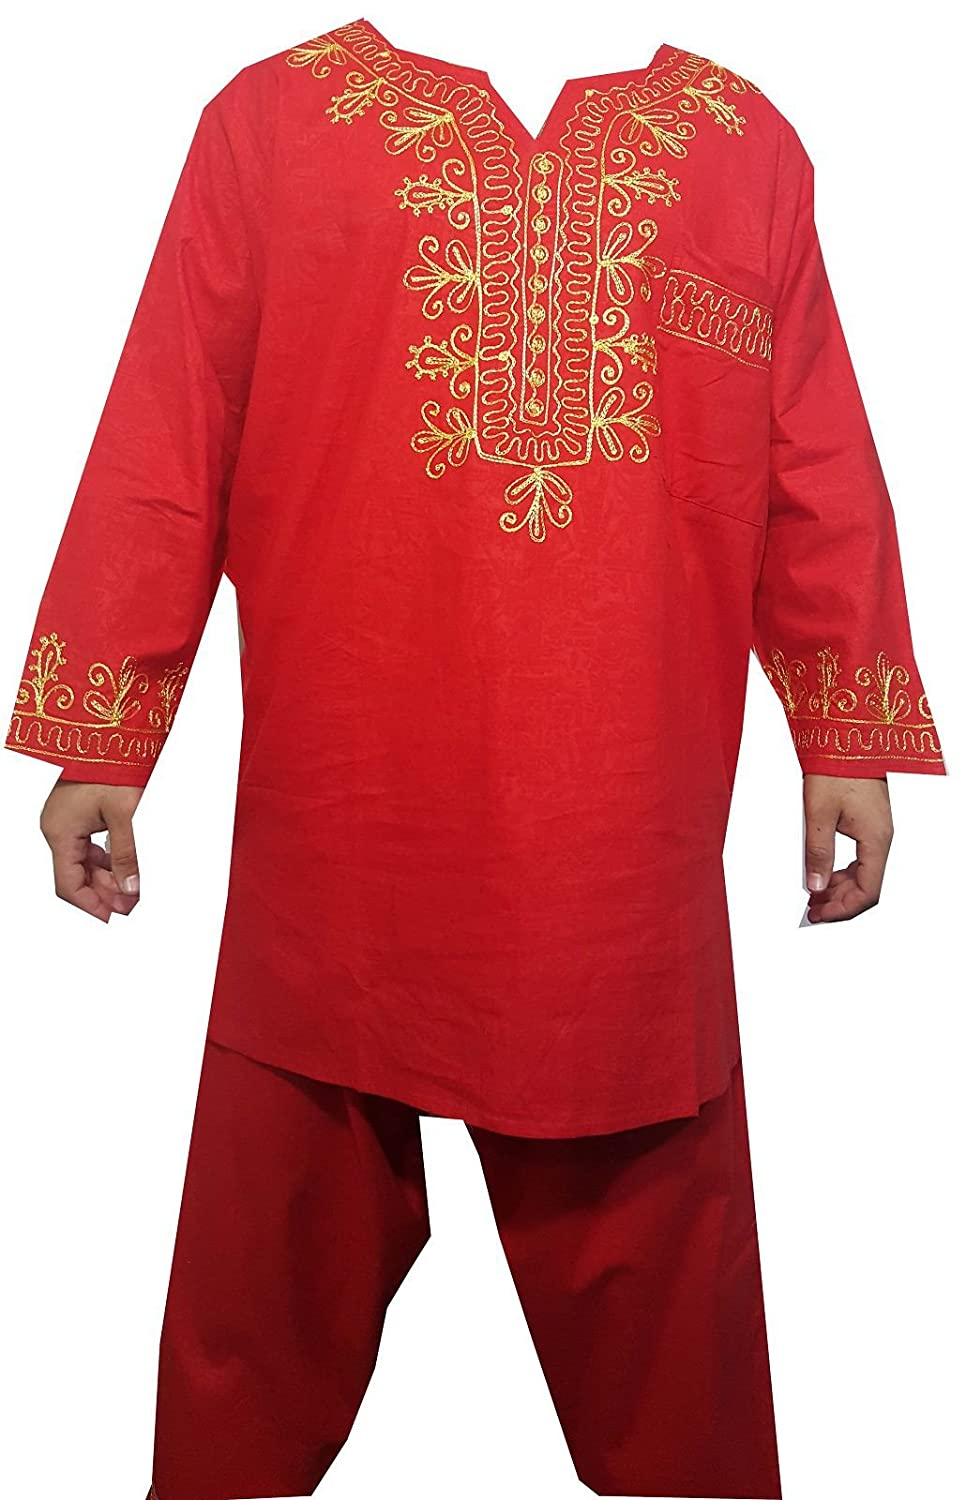 b431764fd15 Amazon.com  DecoraApparel African Traditional Men Suit Ethnic Clothing  Brocade Pant Set S